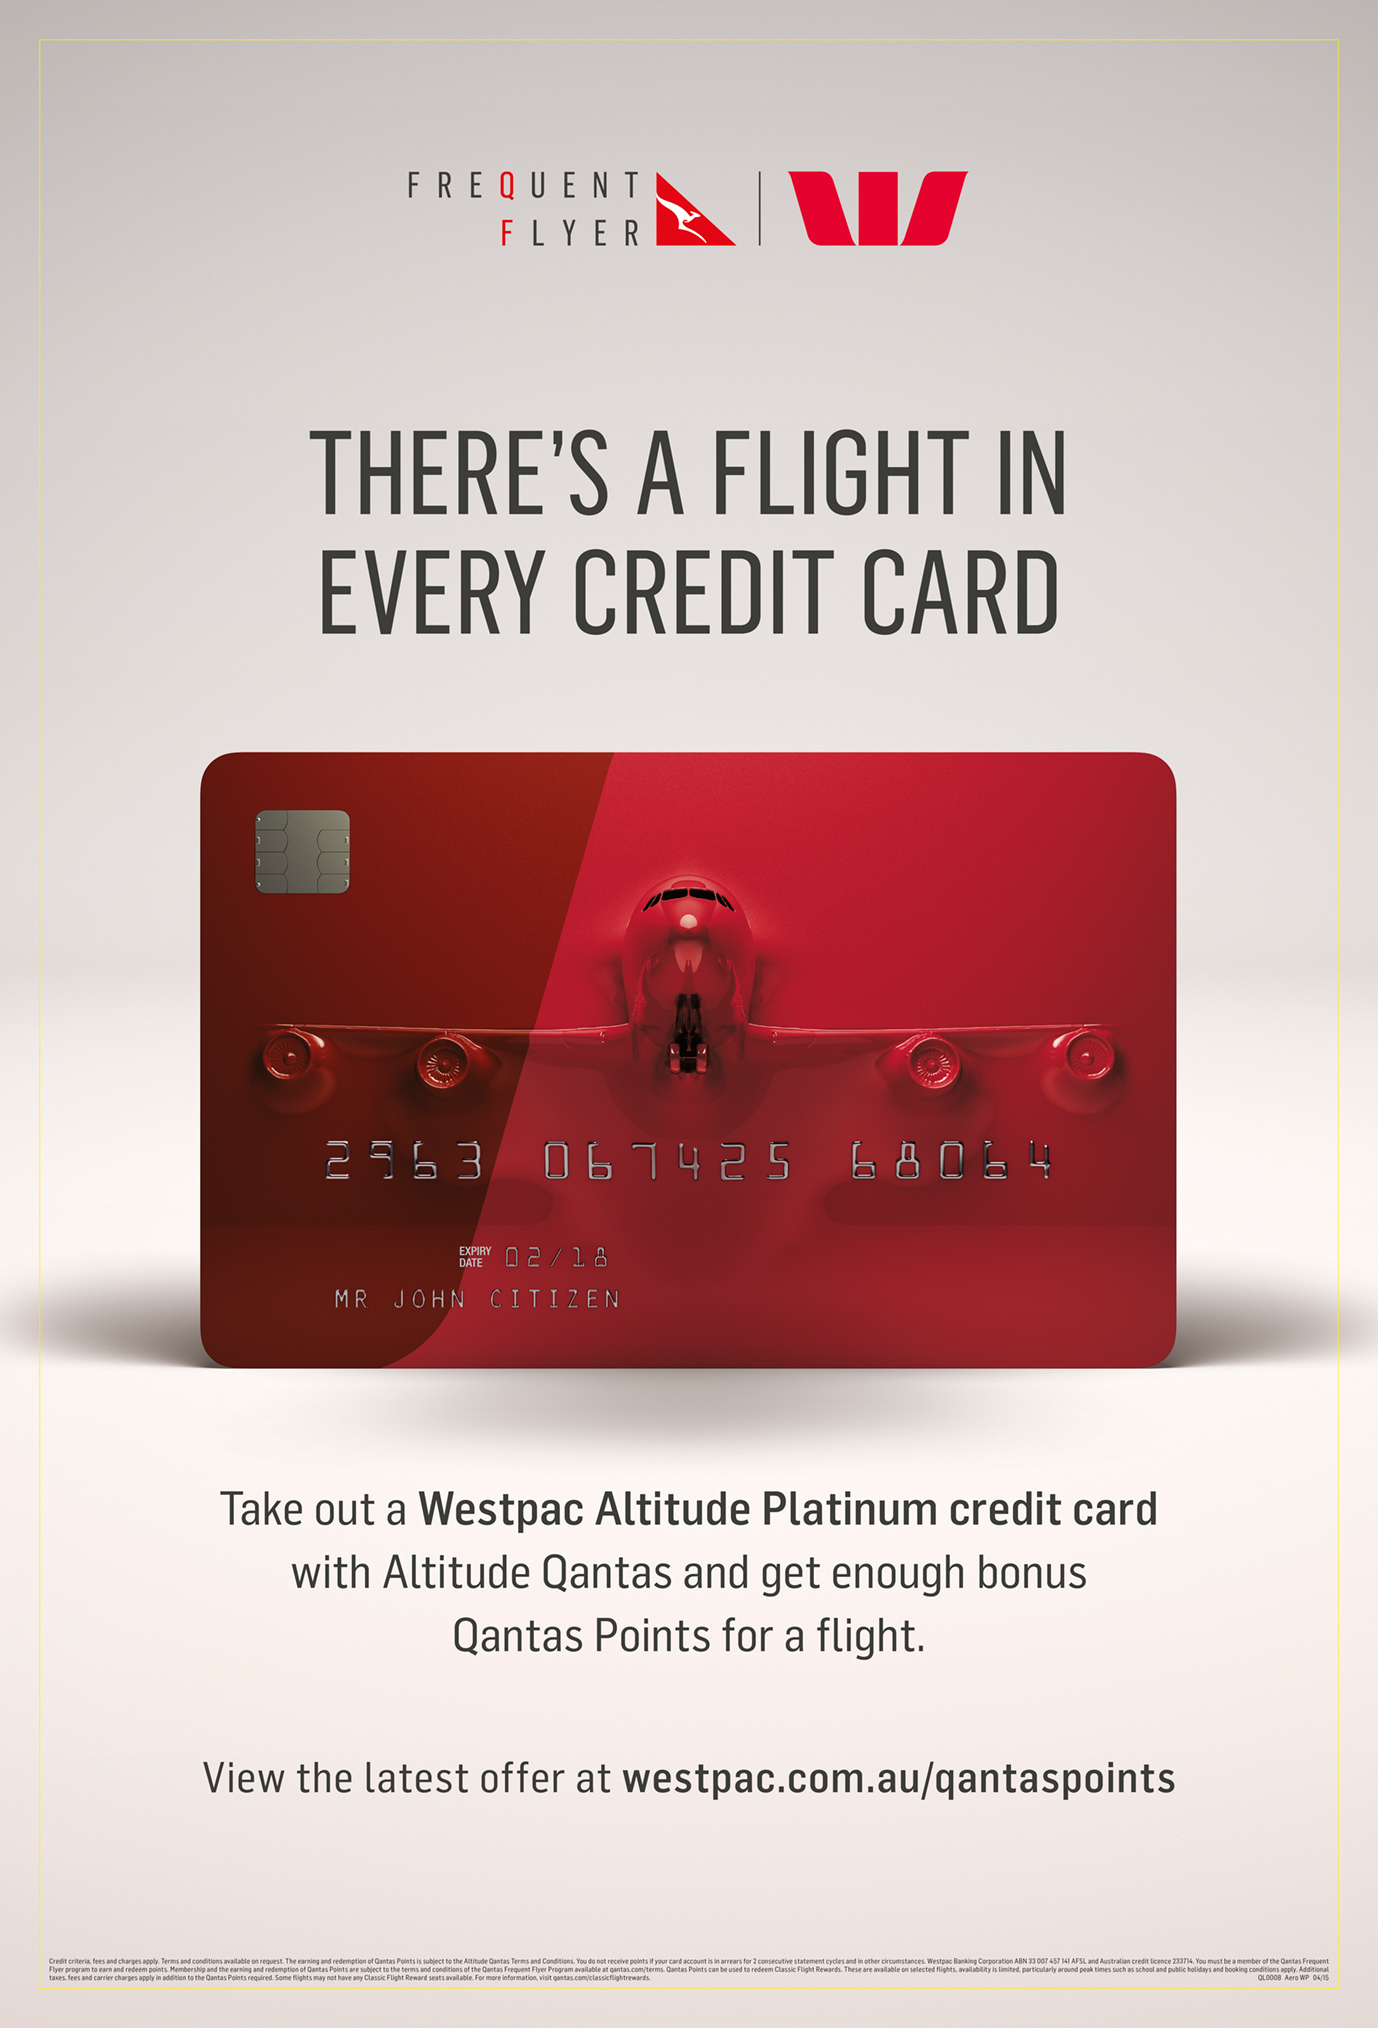 credit cards with frequent flyer points - Bruce.brianwilliams.co